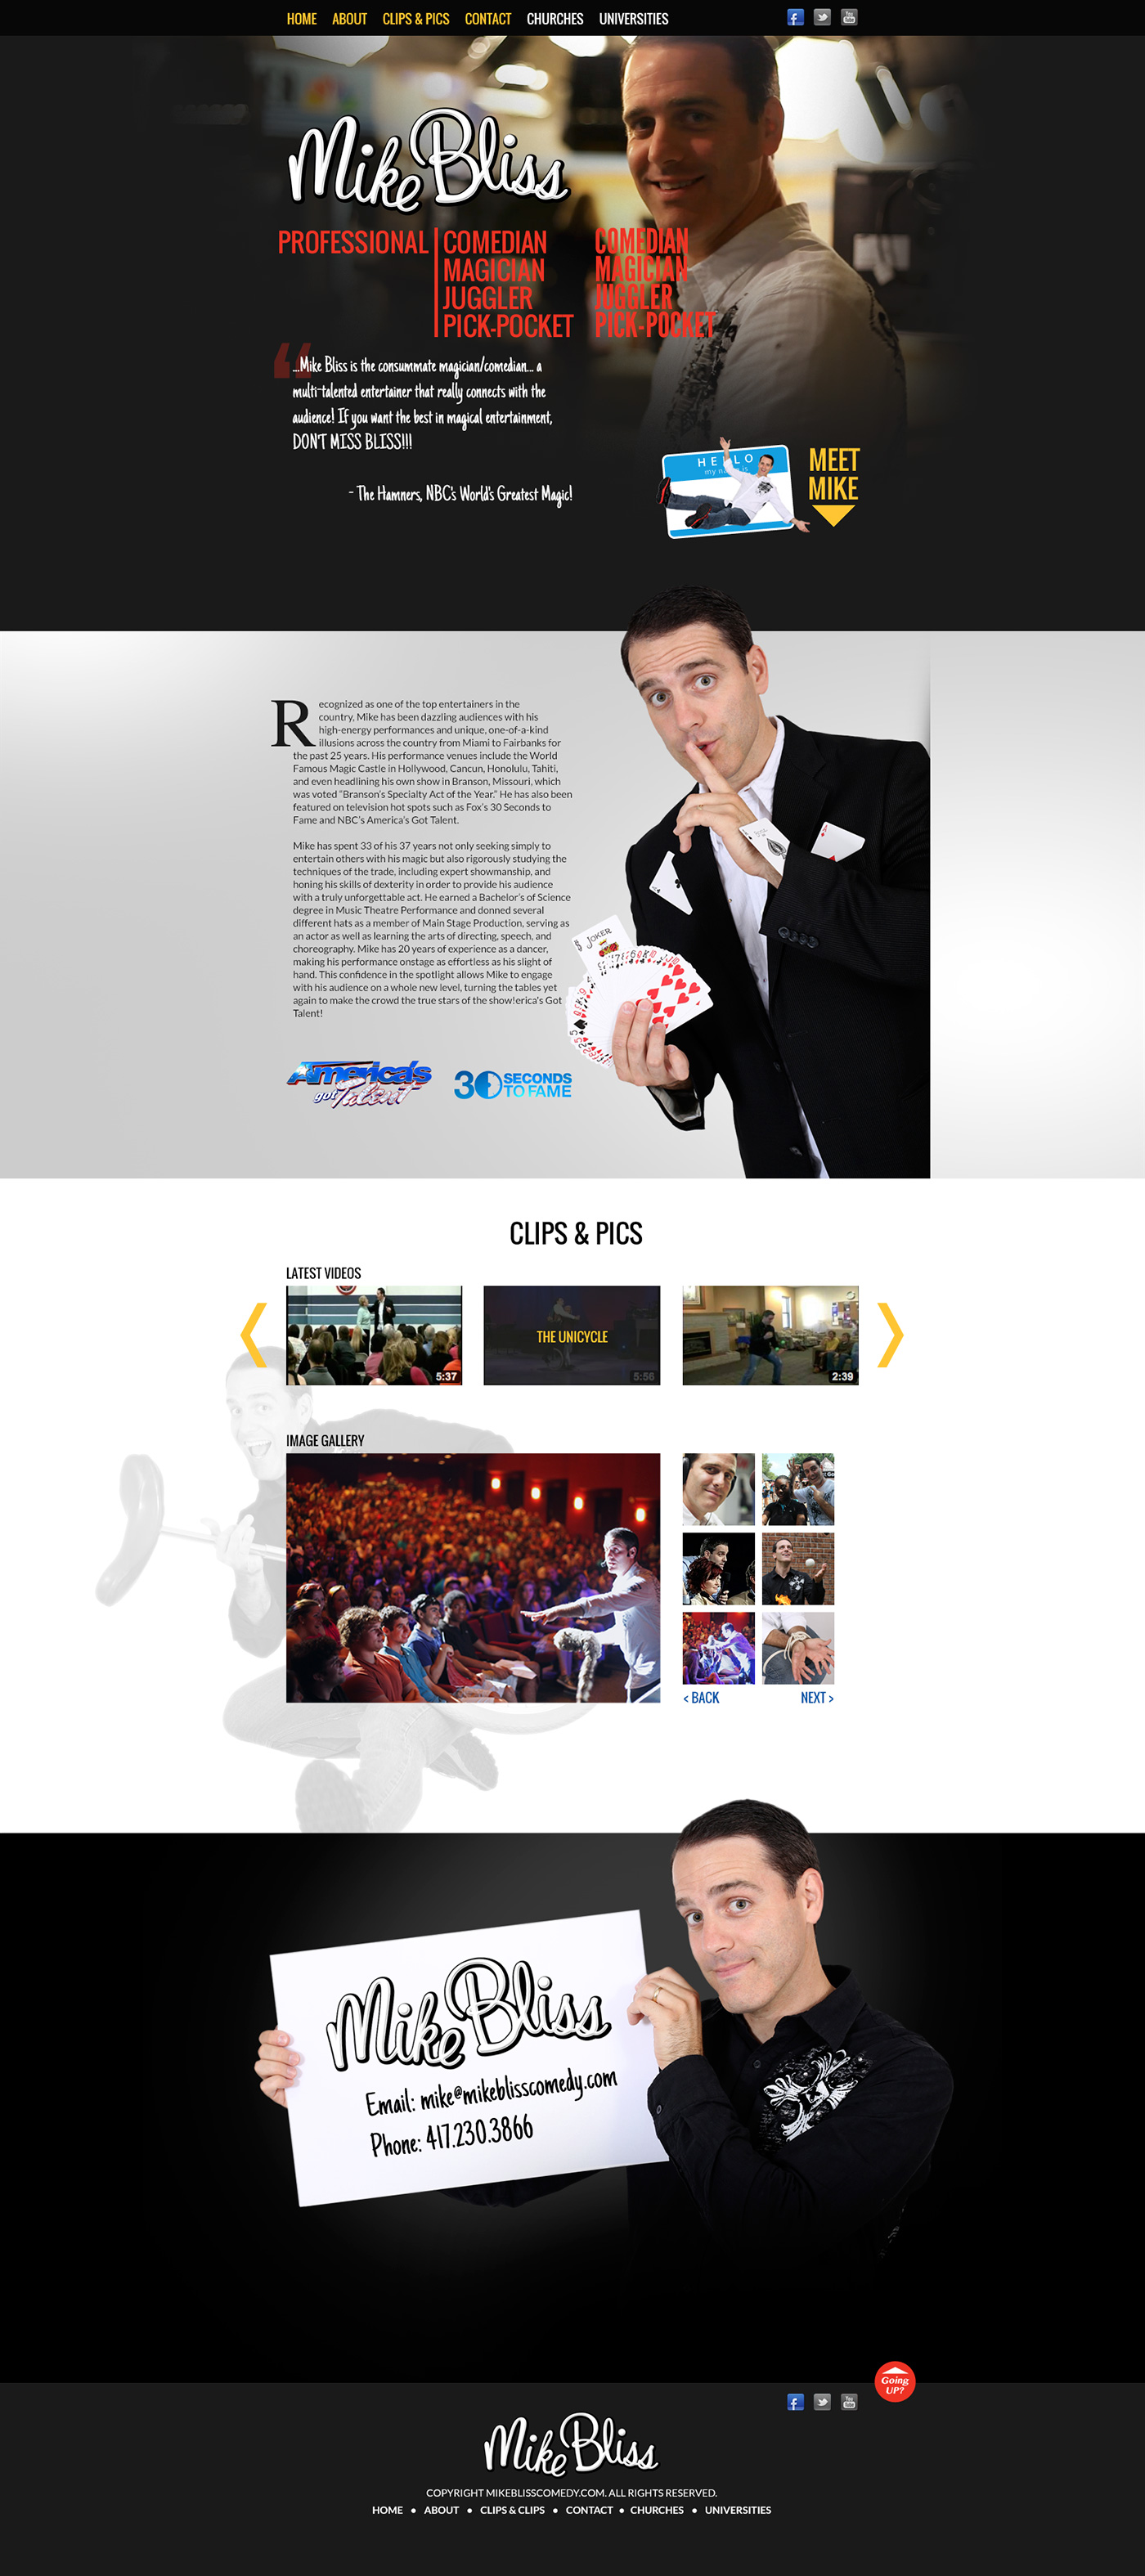 Mike Bliss Comedy website design